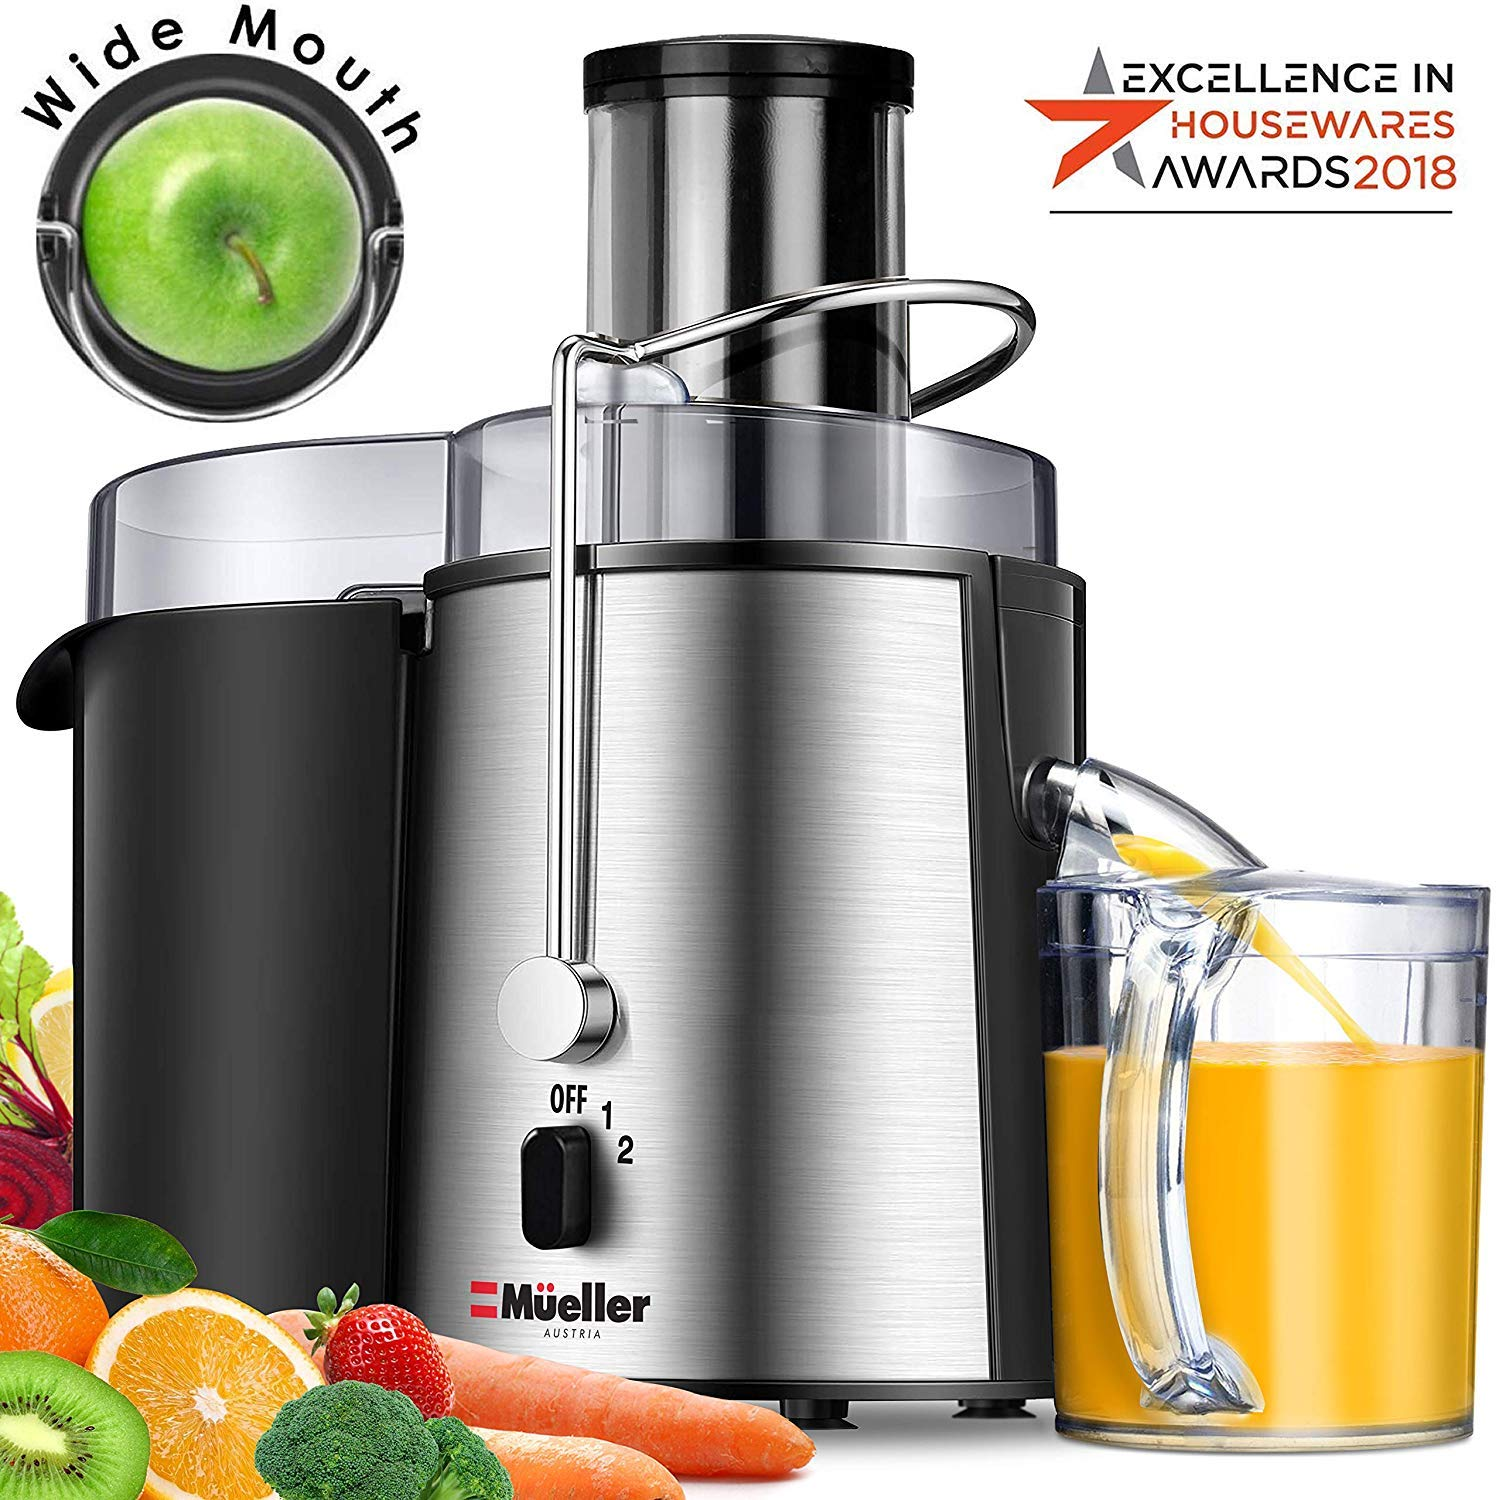 Best Juicer Under 100 dollars